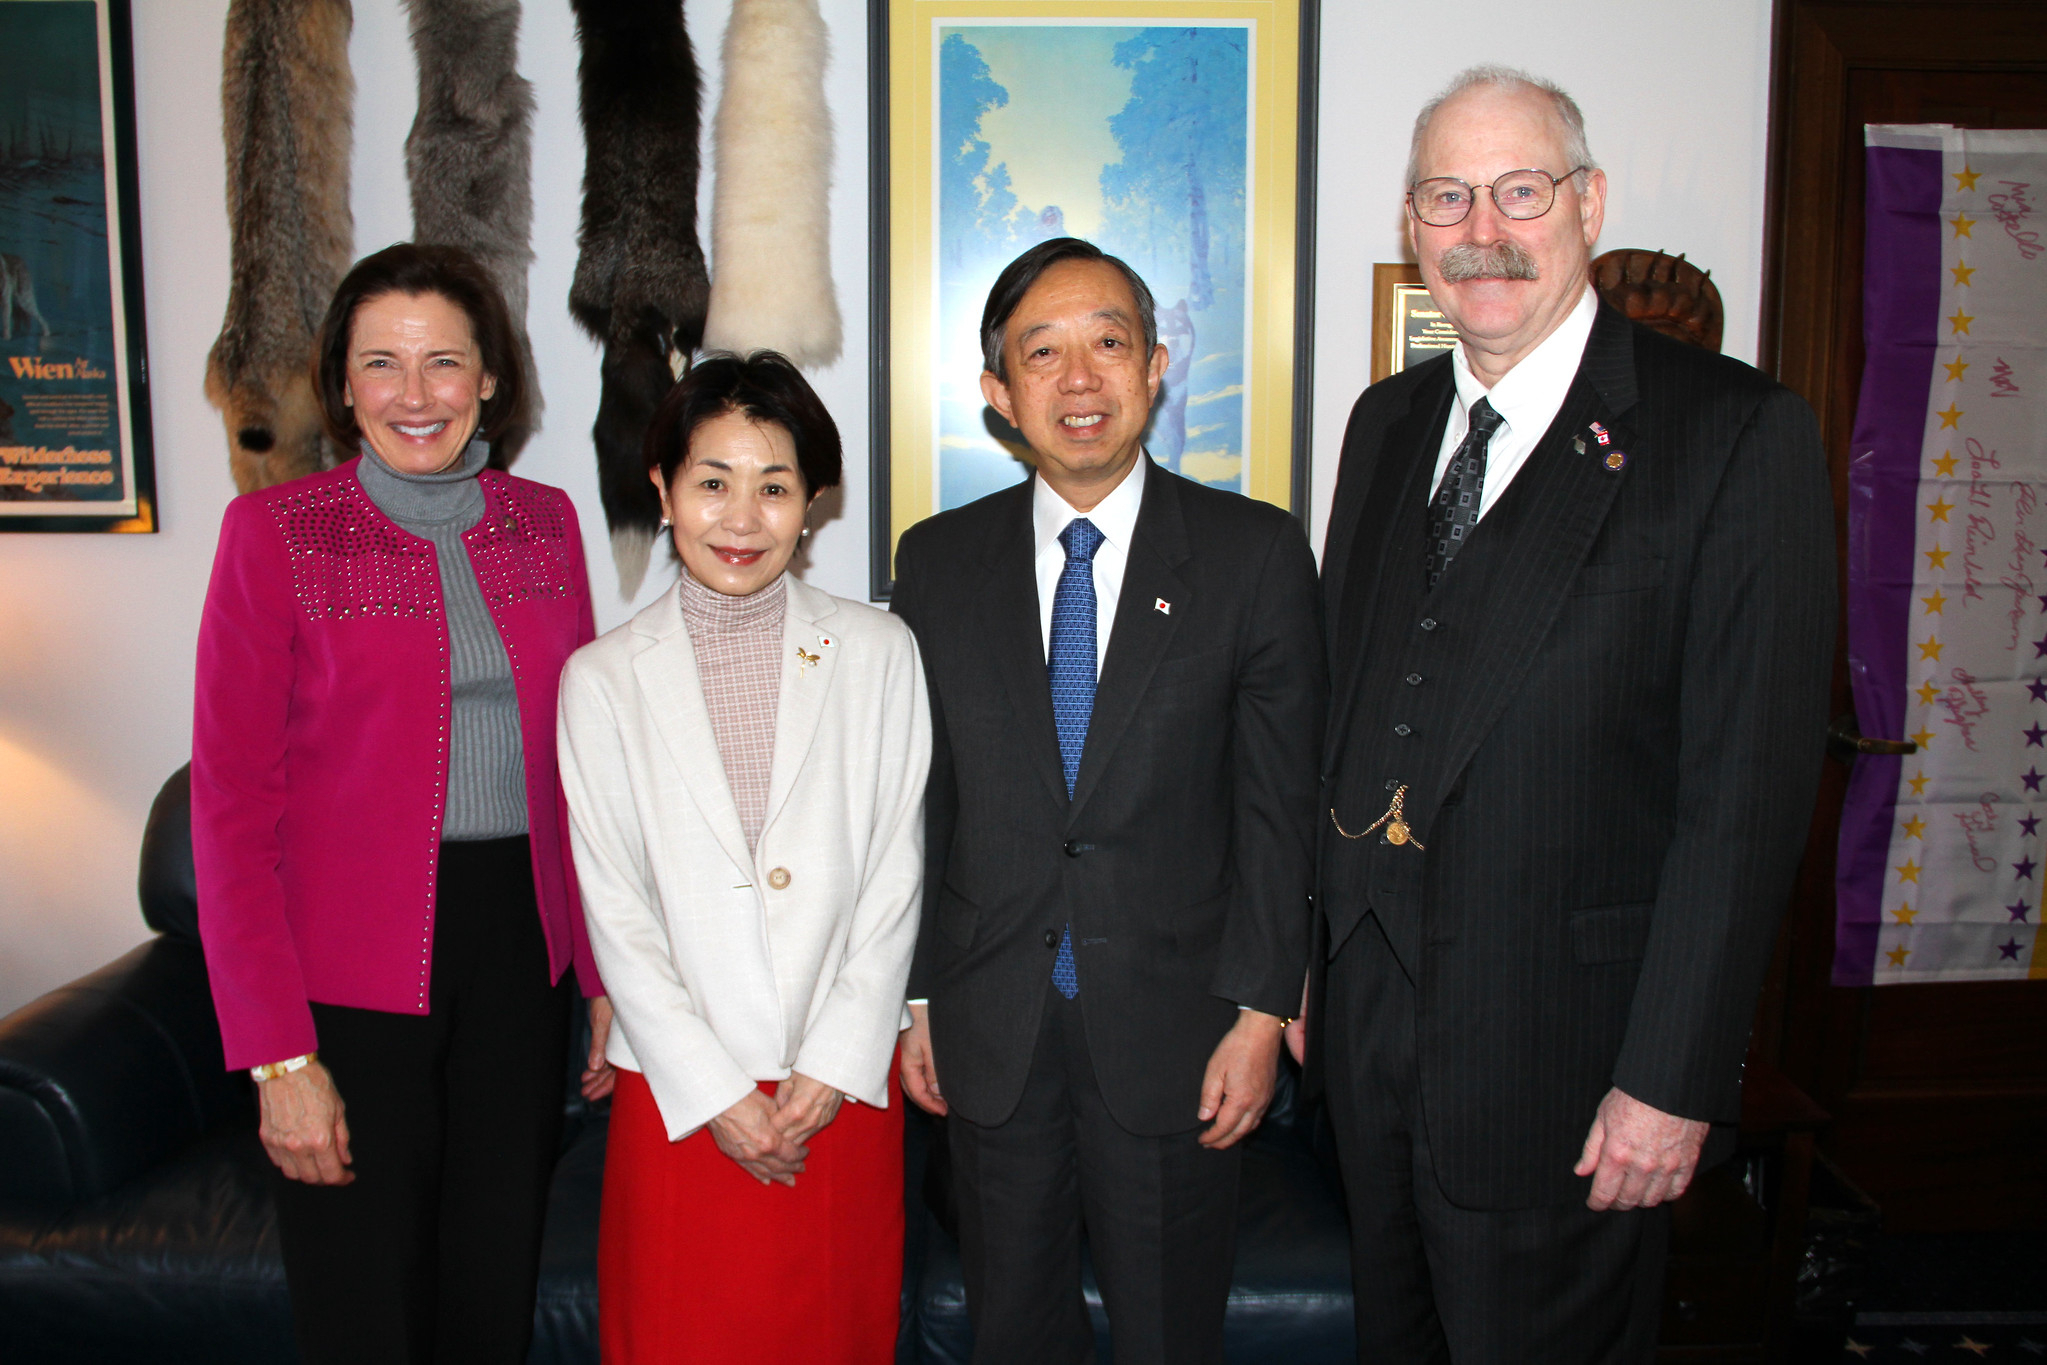 Senate President Giessel and Senator Stedman met w/  Consul Masatoshi Sato and his wife Kazue Sato